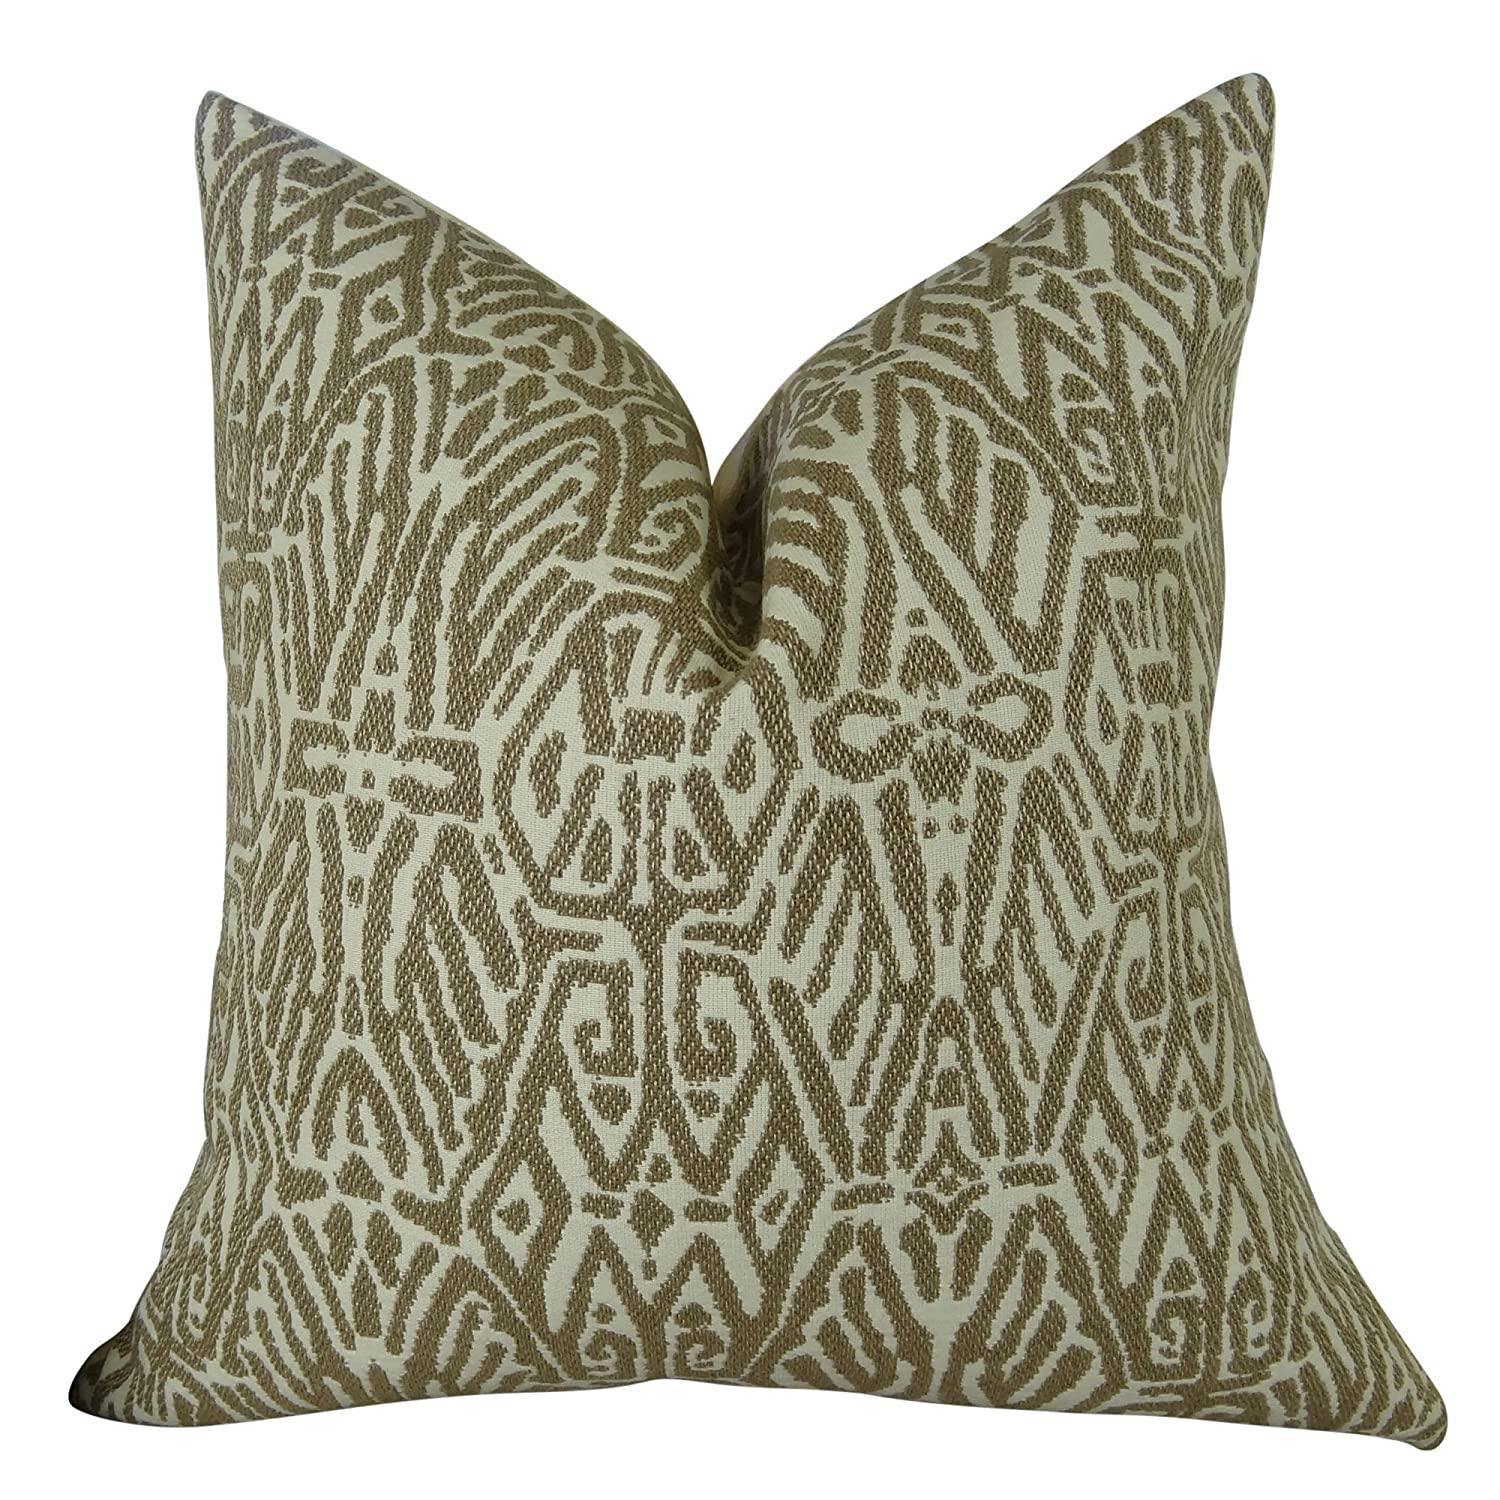 A .12  x 20  Thomas Collection Handmade in USA Luxury Decorative Pillow for Couch Sofa Bed, Made in USA Pillow Insert & Cover, Light Brown Cream Graphic Pillow  11162